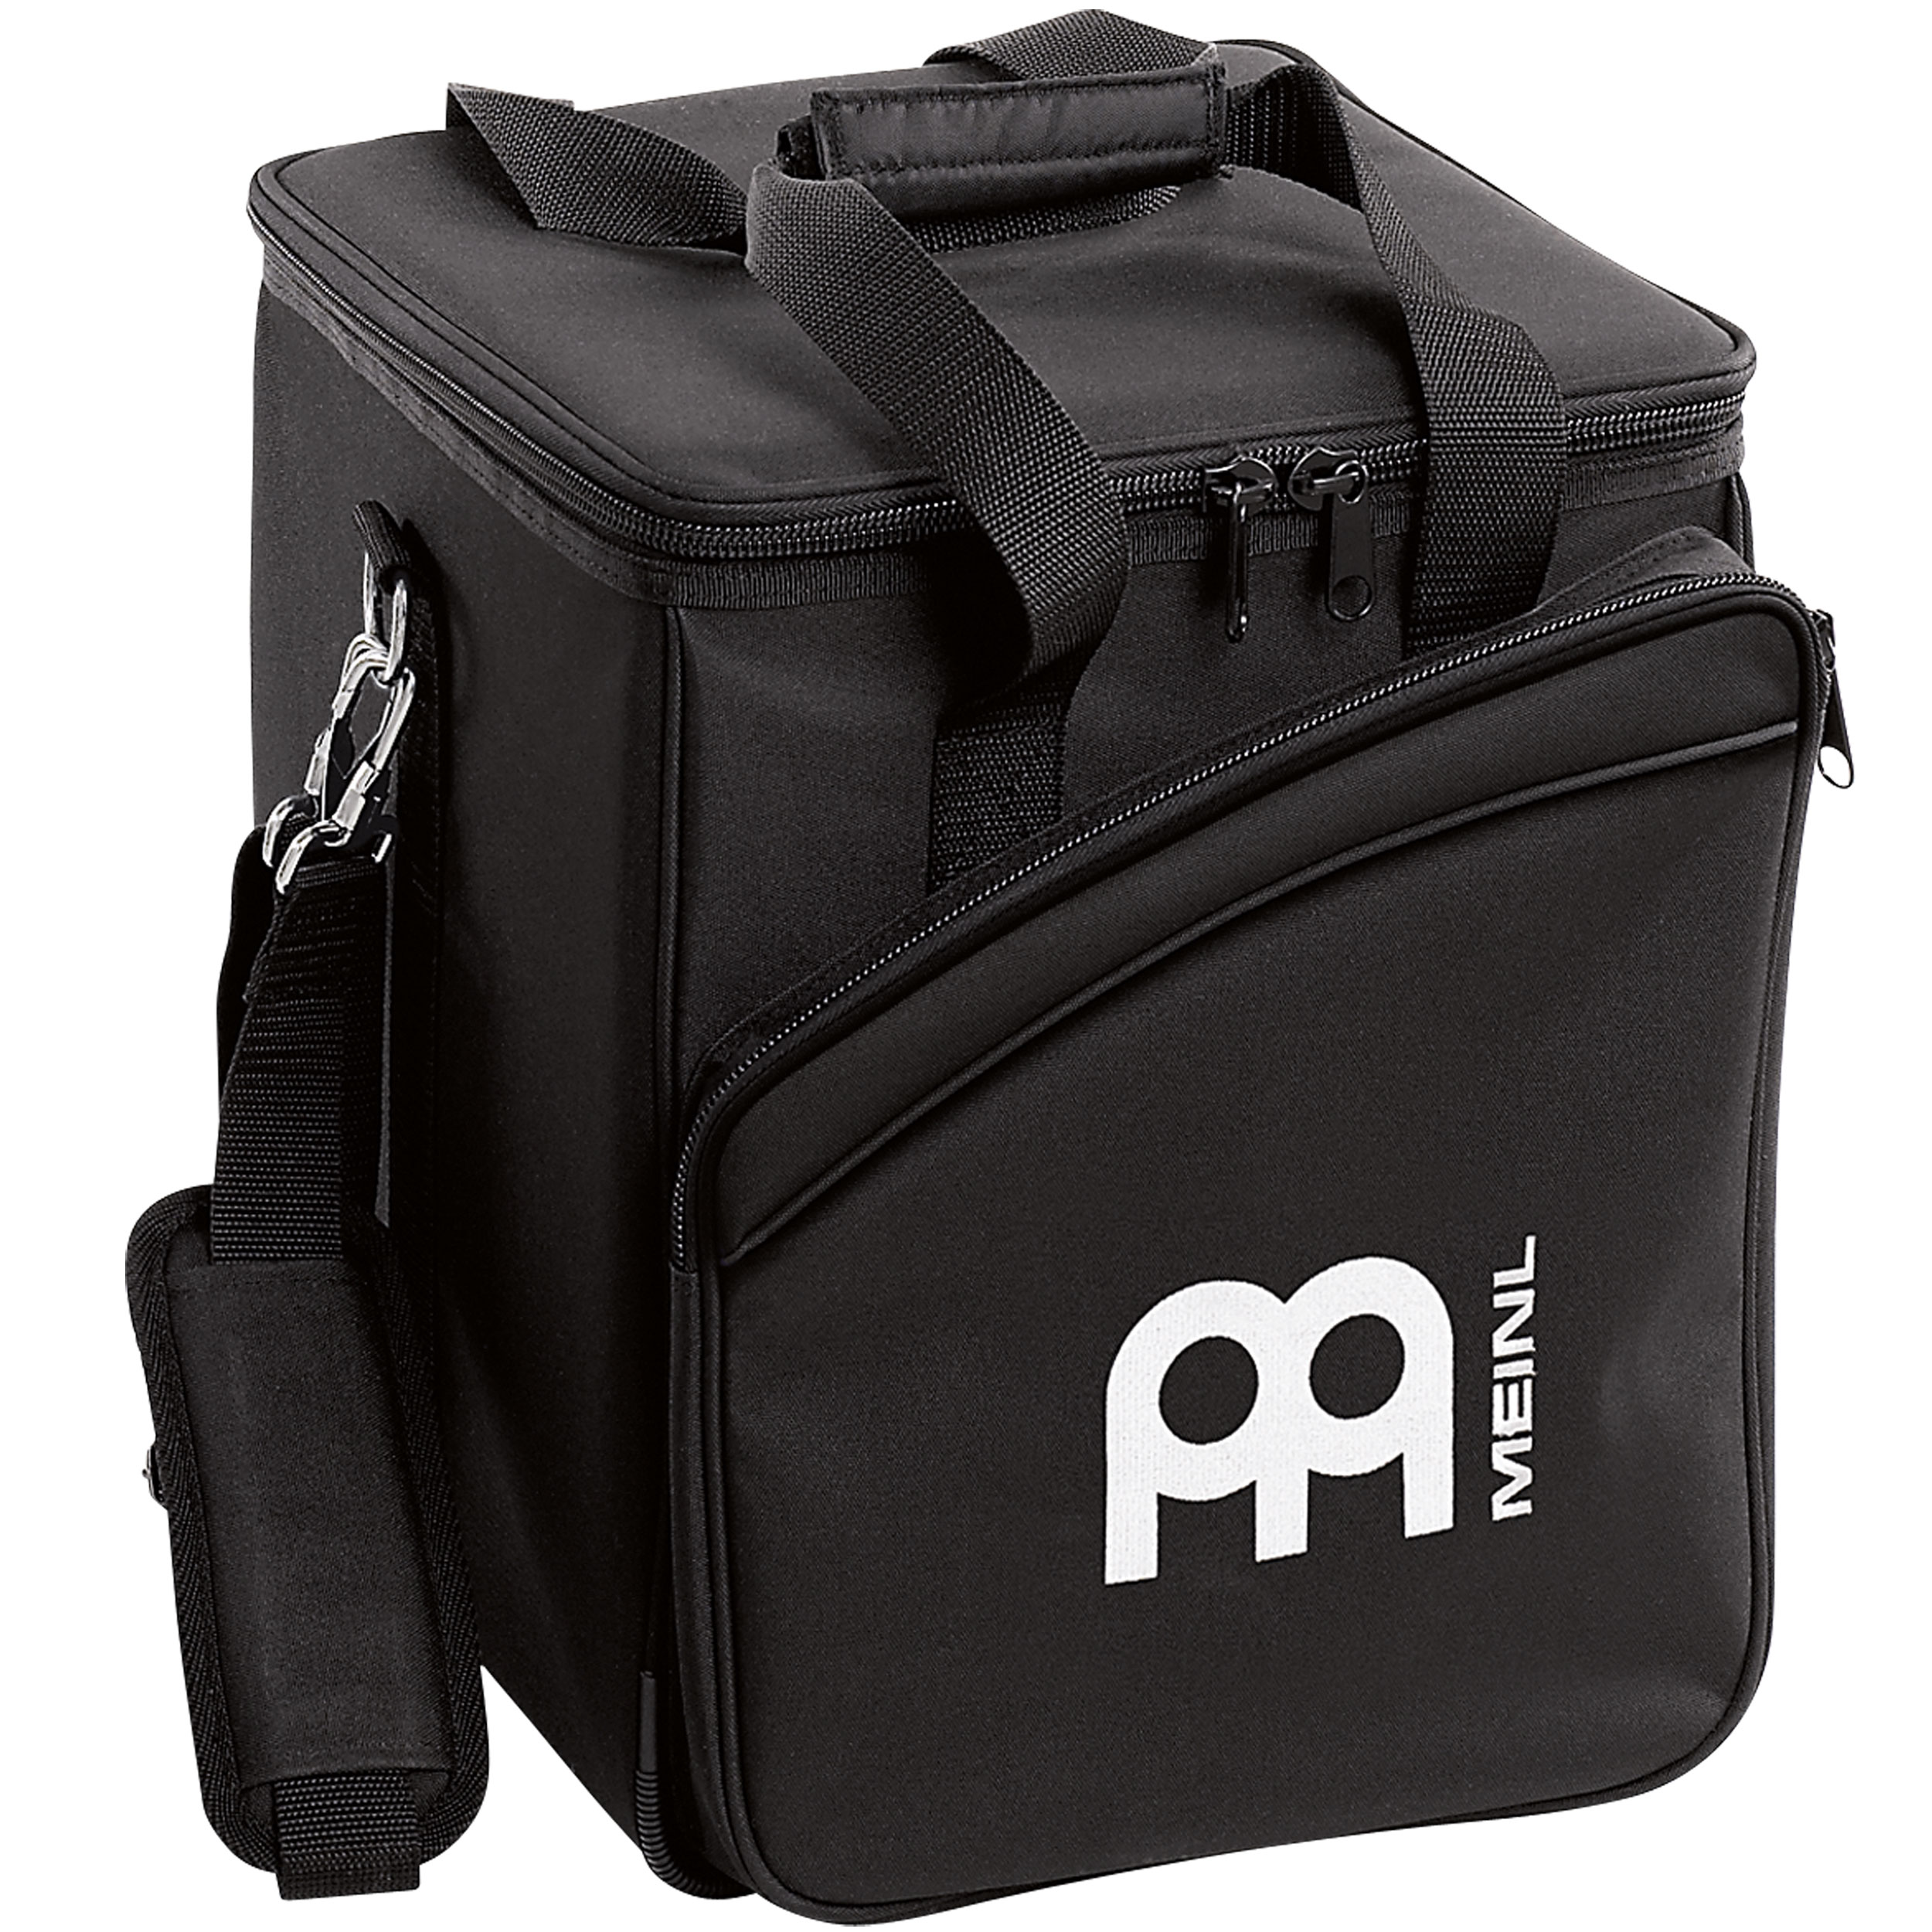 Meinl Large Black Professional Ibo Bag